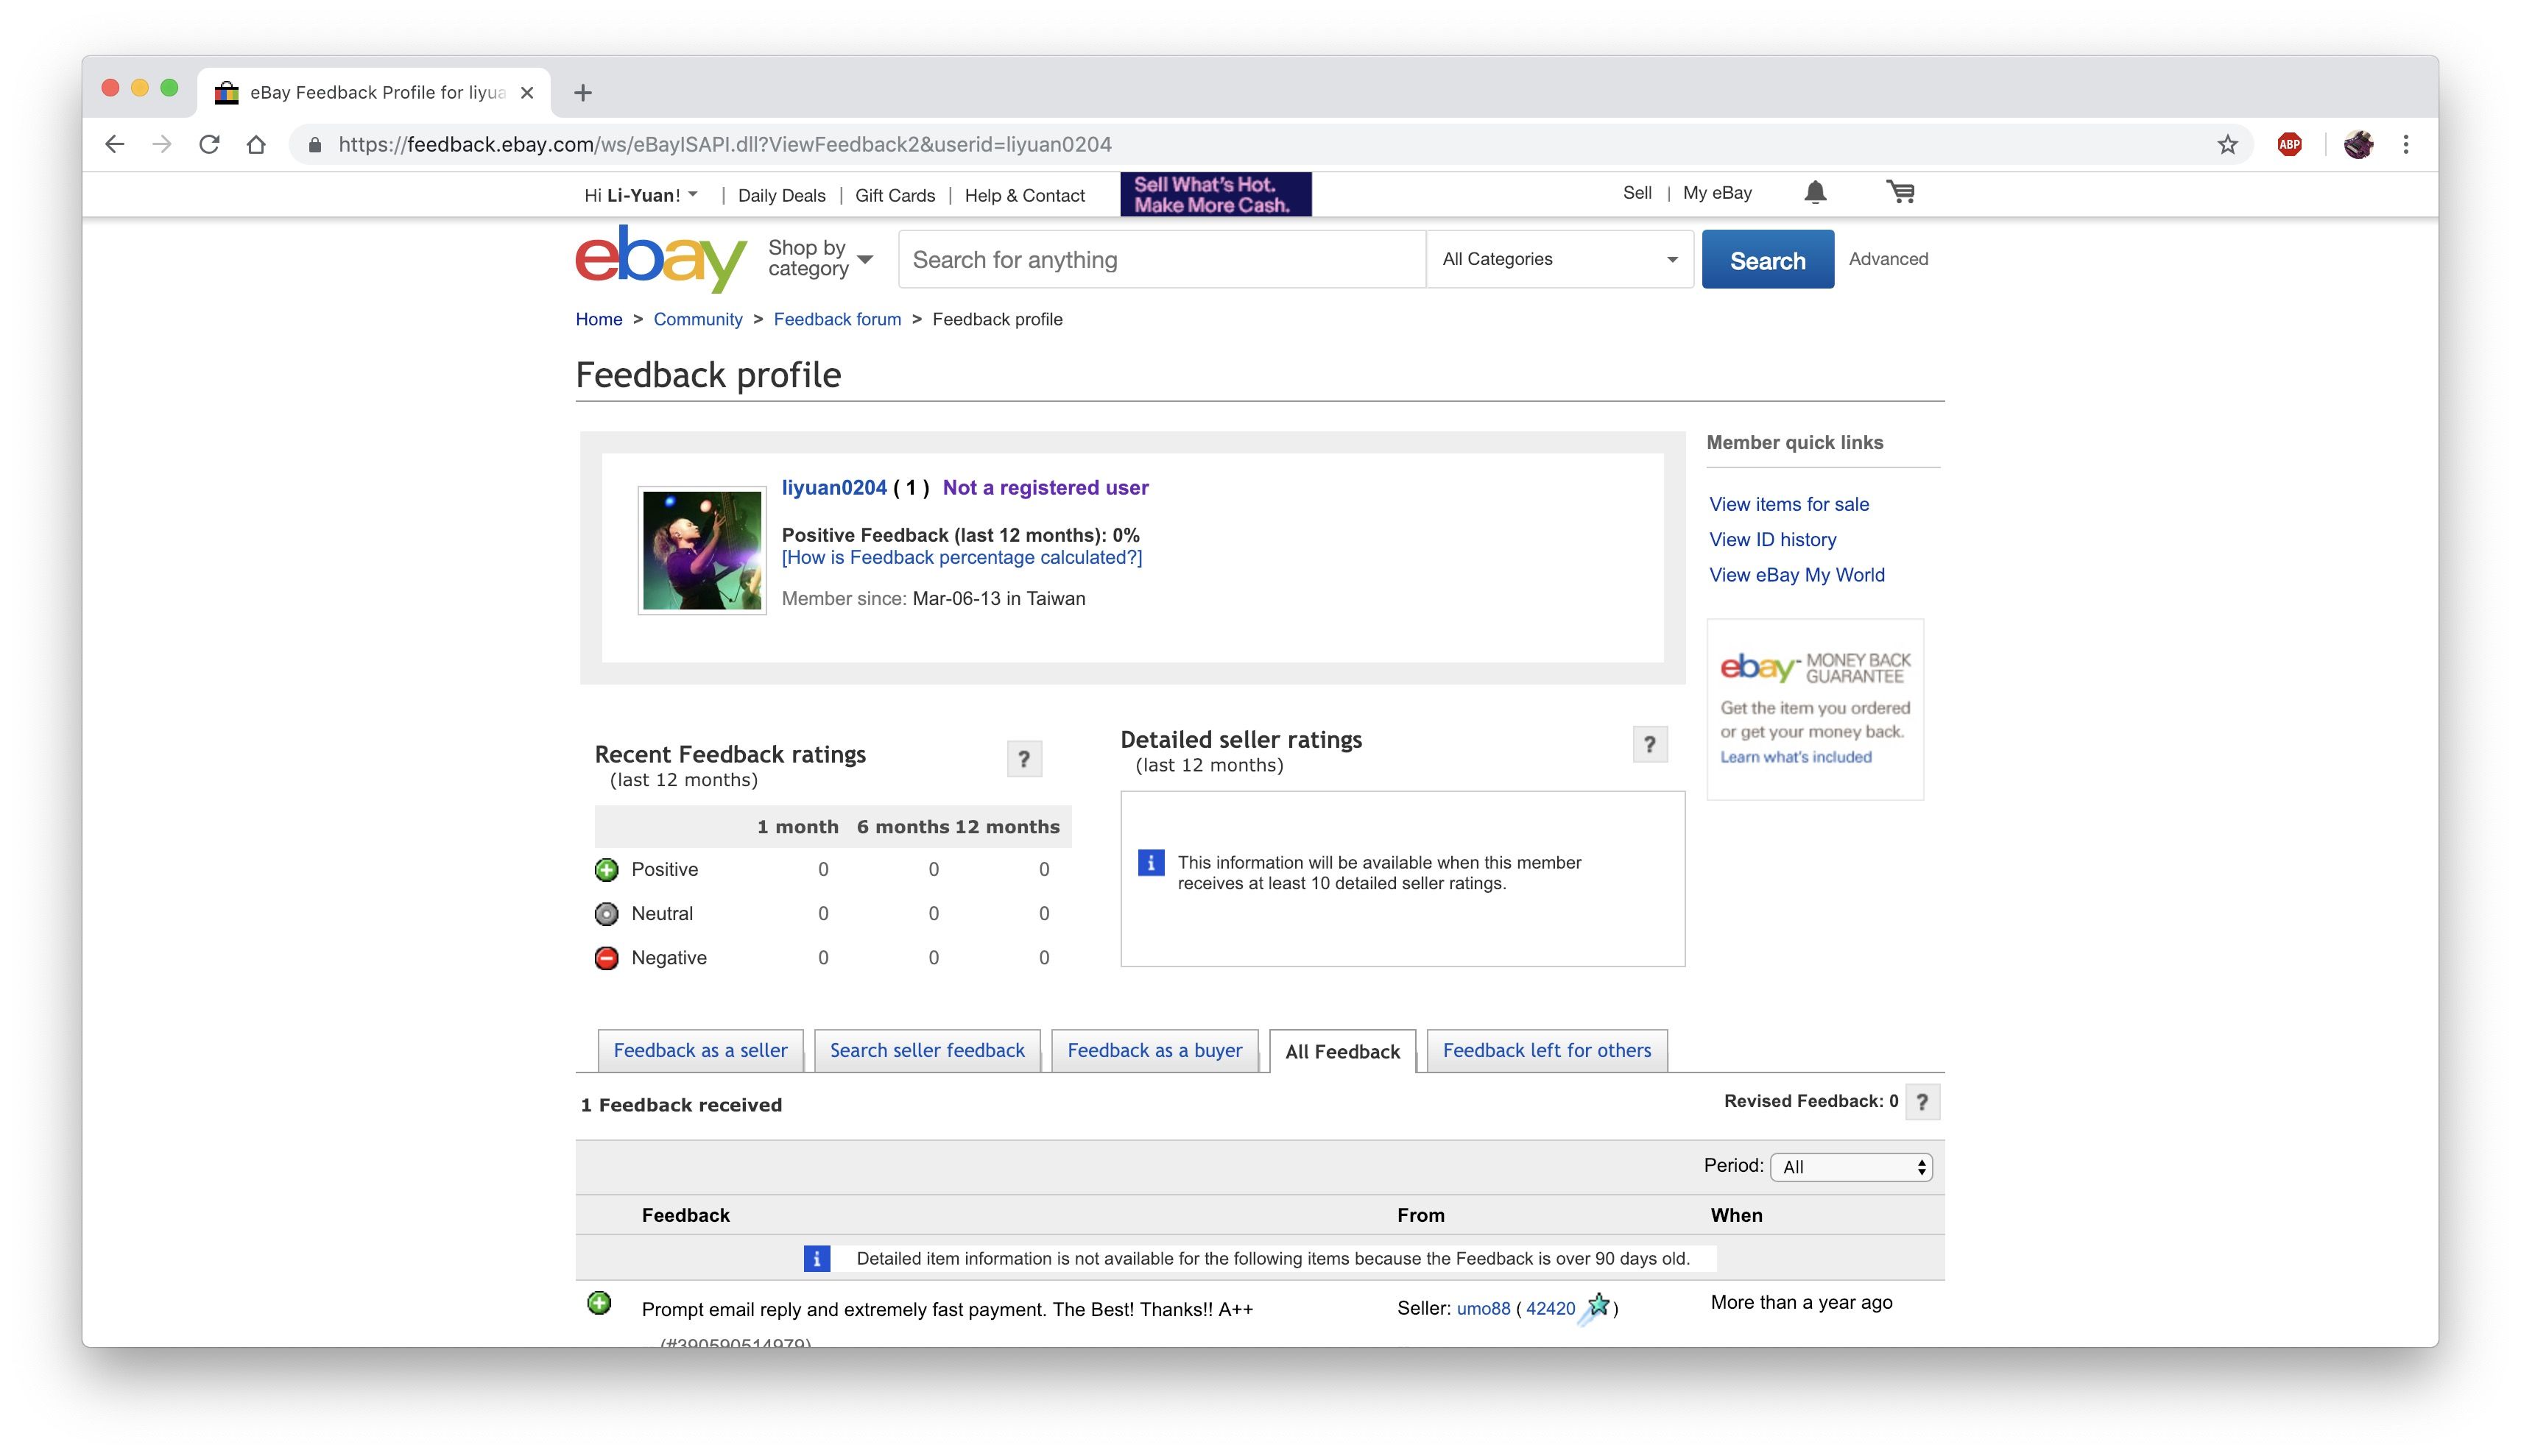 Solved My Ebay Account Has Been Suspended For No Reason The Ebay Community